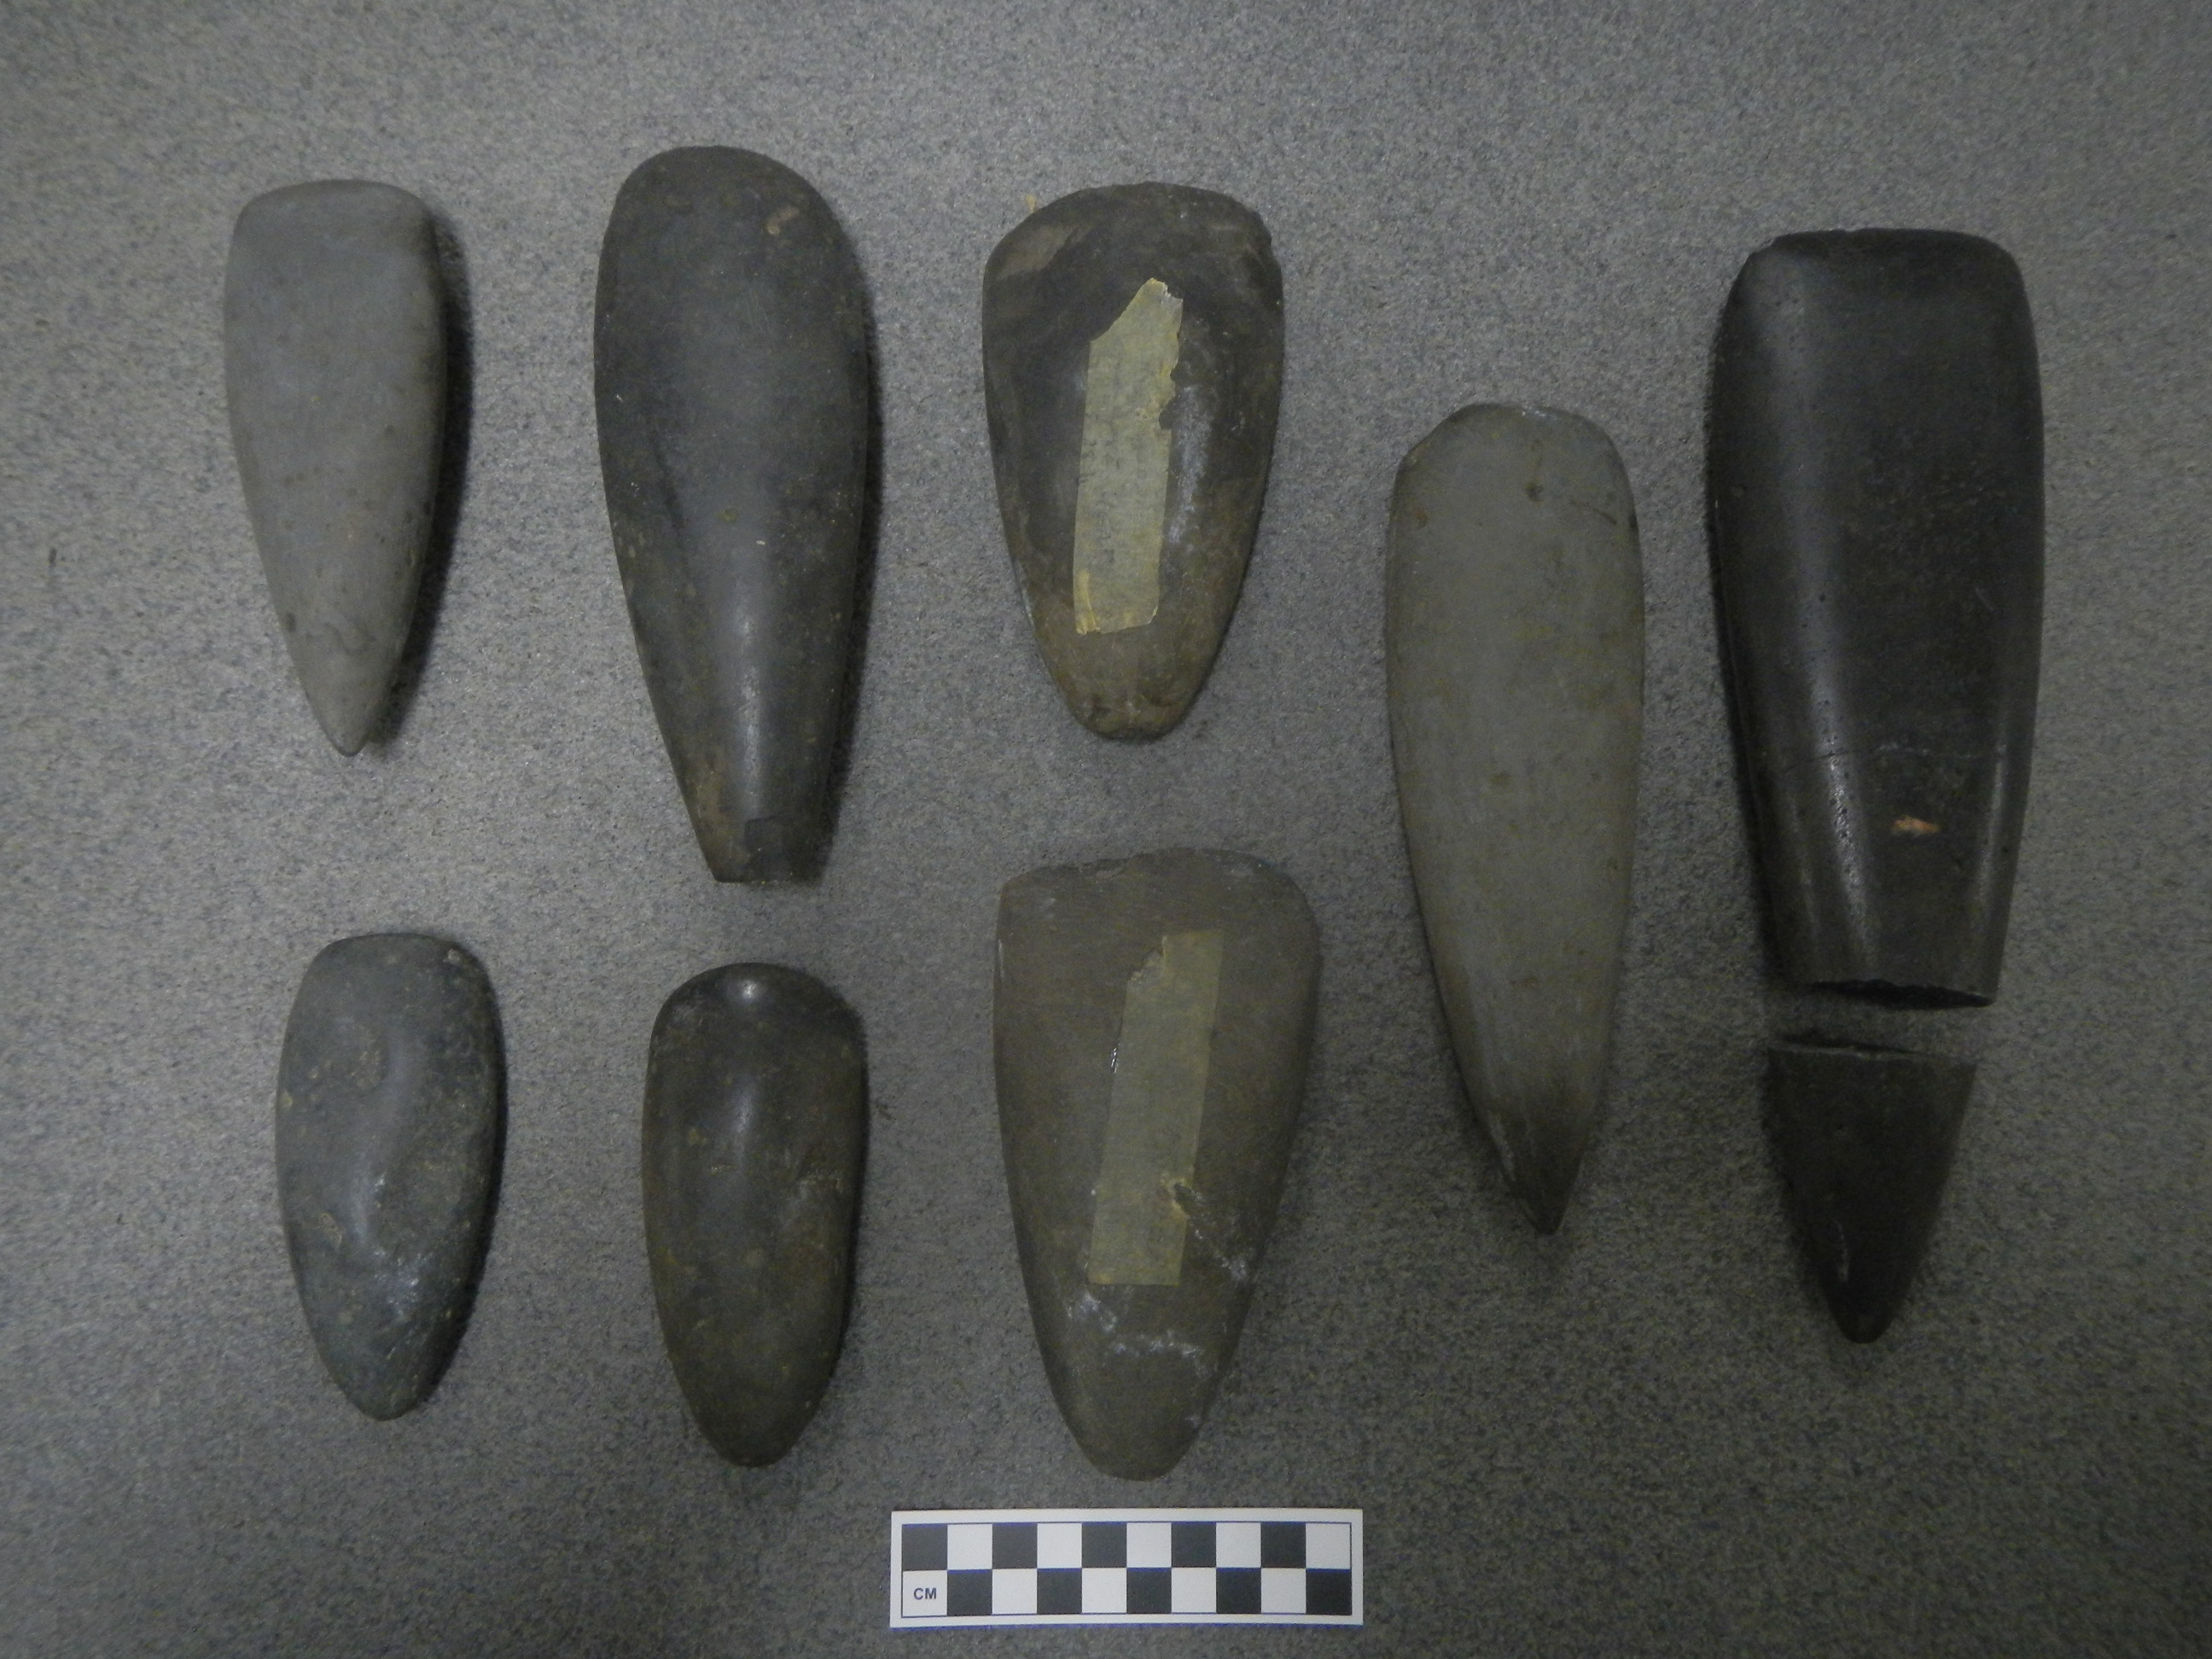 Adze Blades from Southern Vanuatu, Geddie/Robertson Collection, Nova Scotia Museum (Courtesy of J. Flexner)